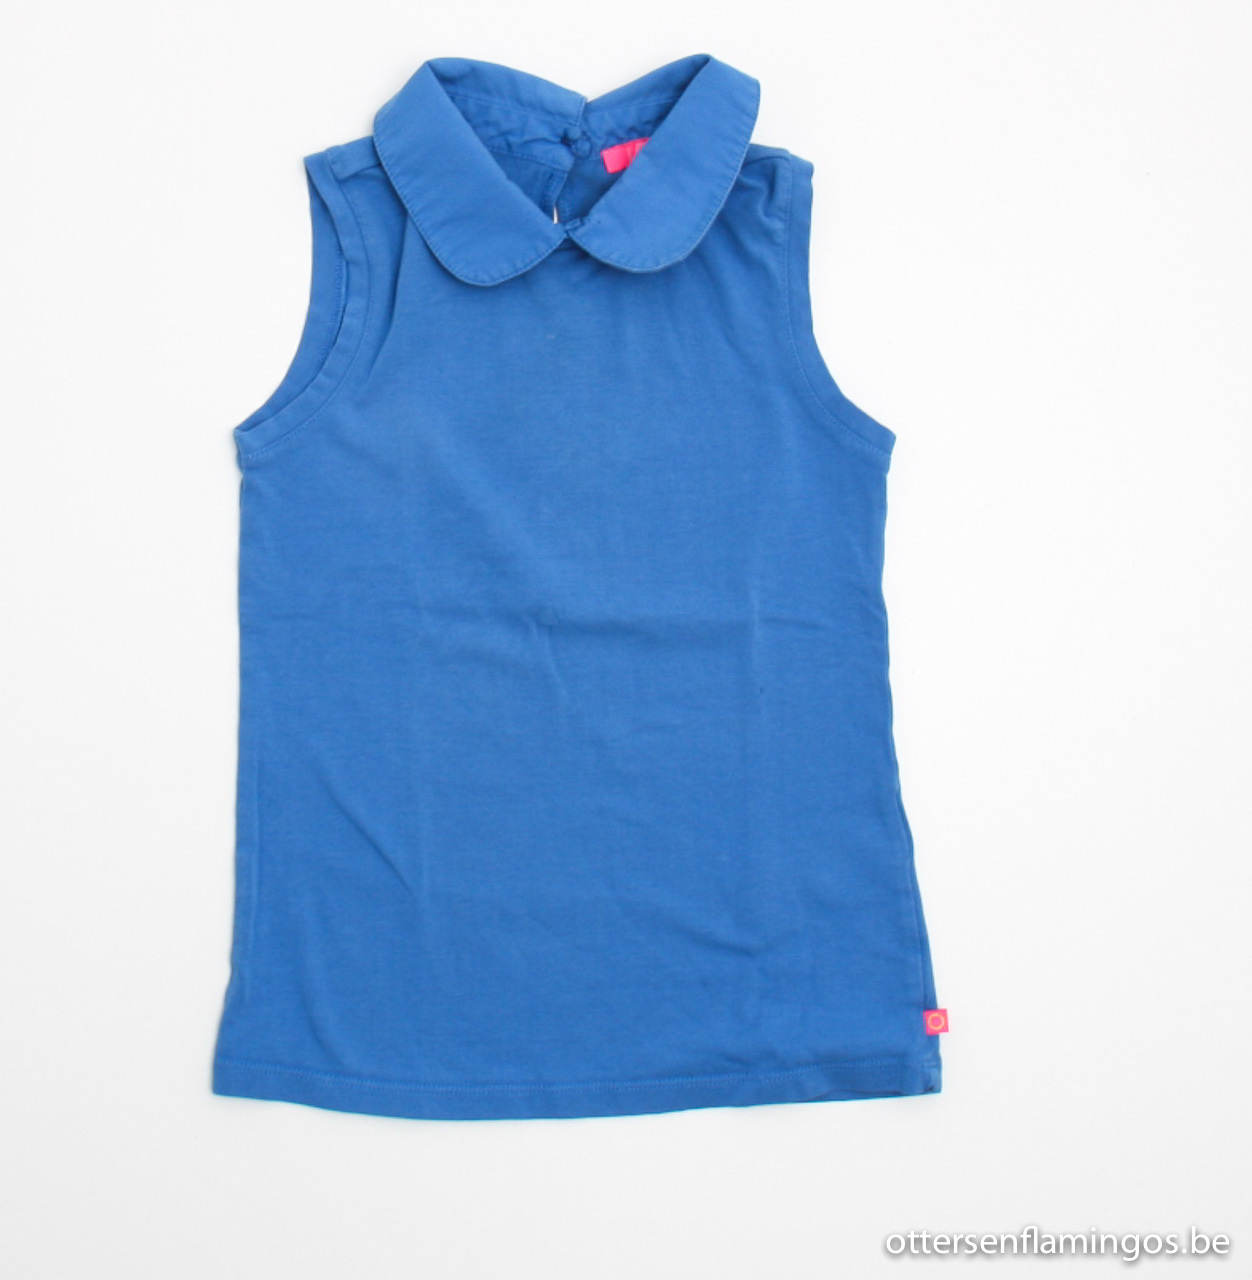 Blauwe T - shirt, Le Big, 98/104